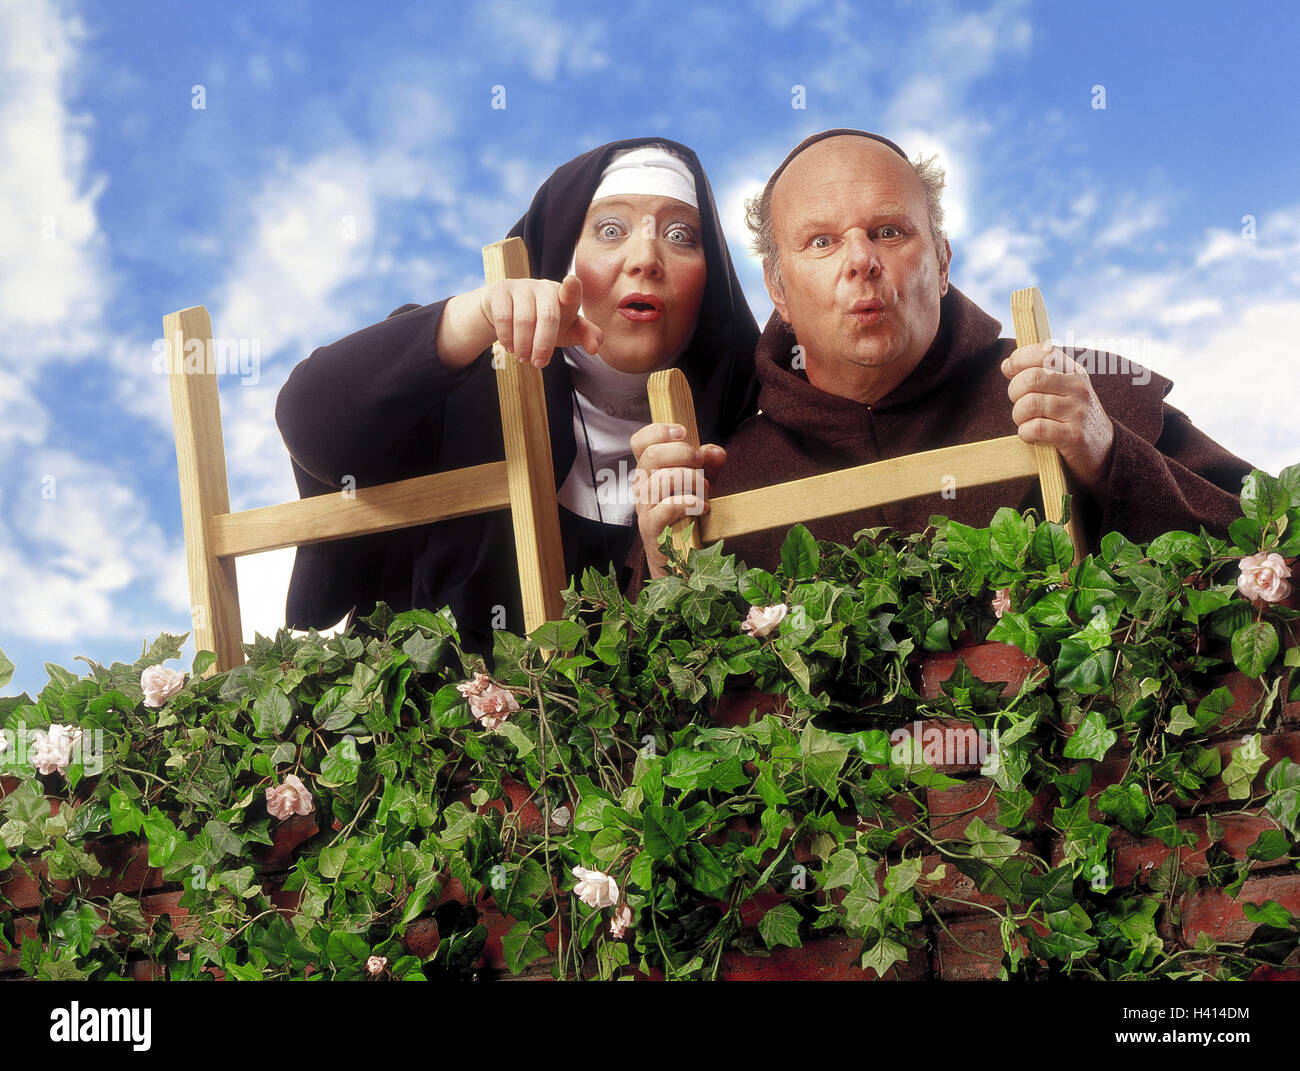 Hedge, monk, nun, conductor, stand, show gesture, astonishment, Composing, professions, studio, order woman, cloister Stock Photo